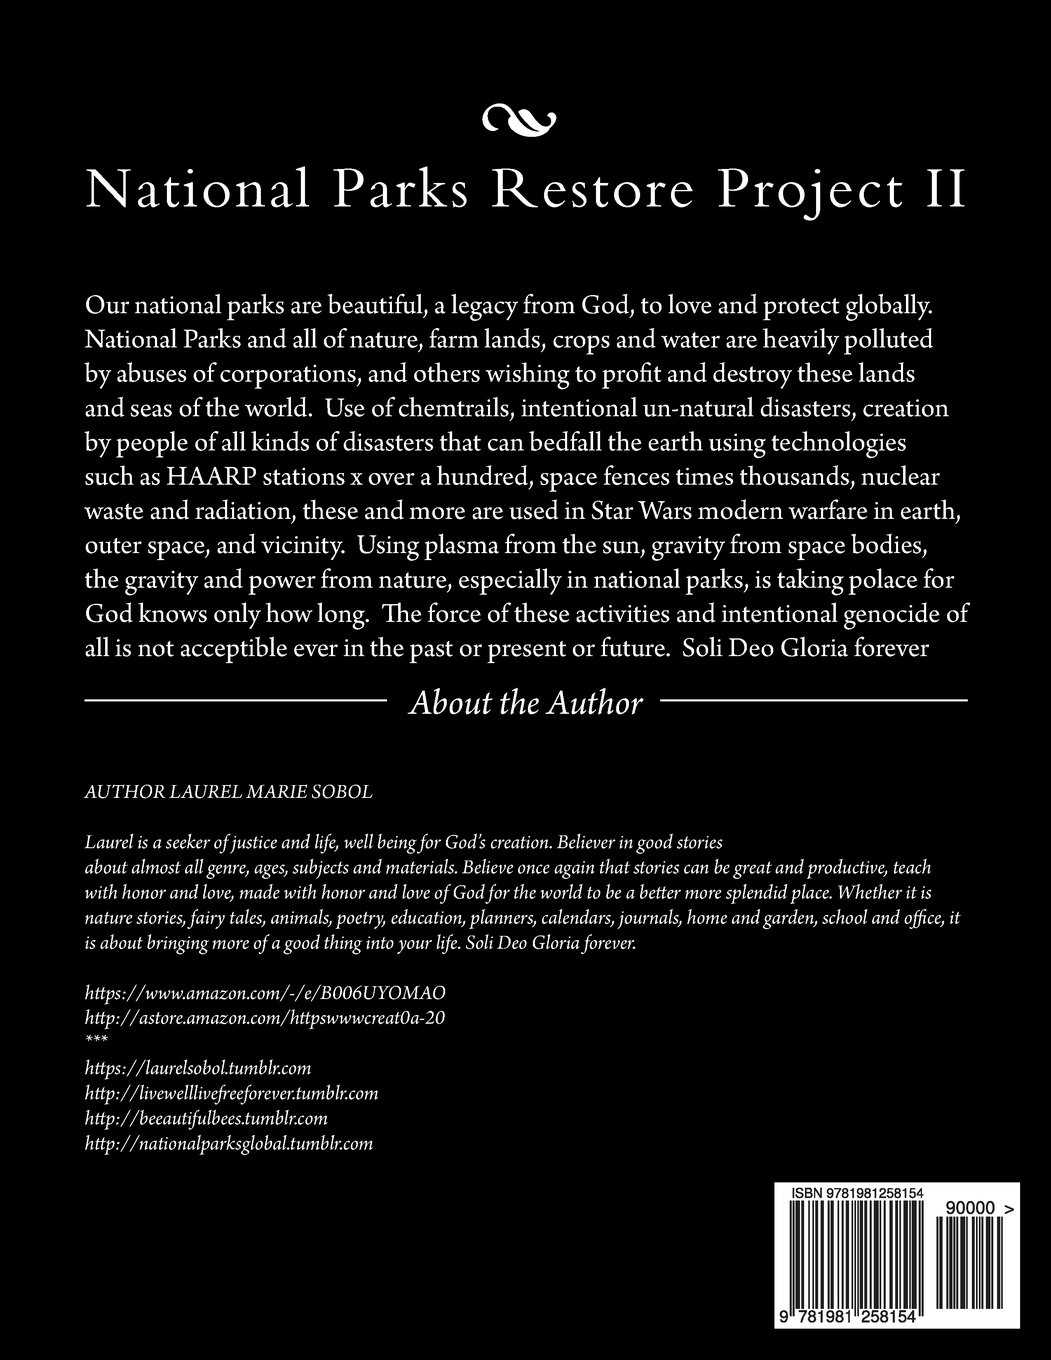 National Parks Restore Project II (Save Our Planet Campaign